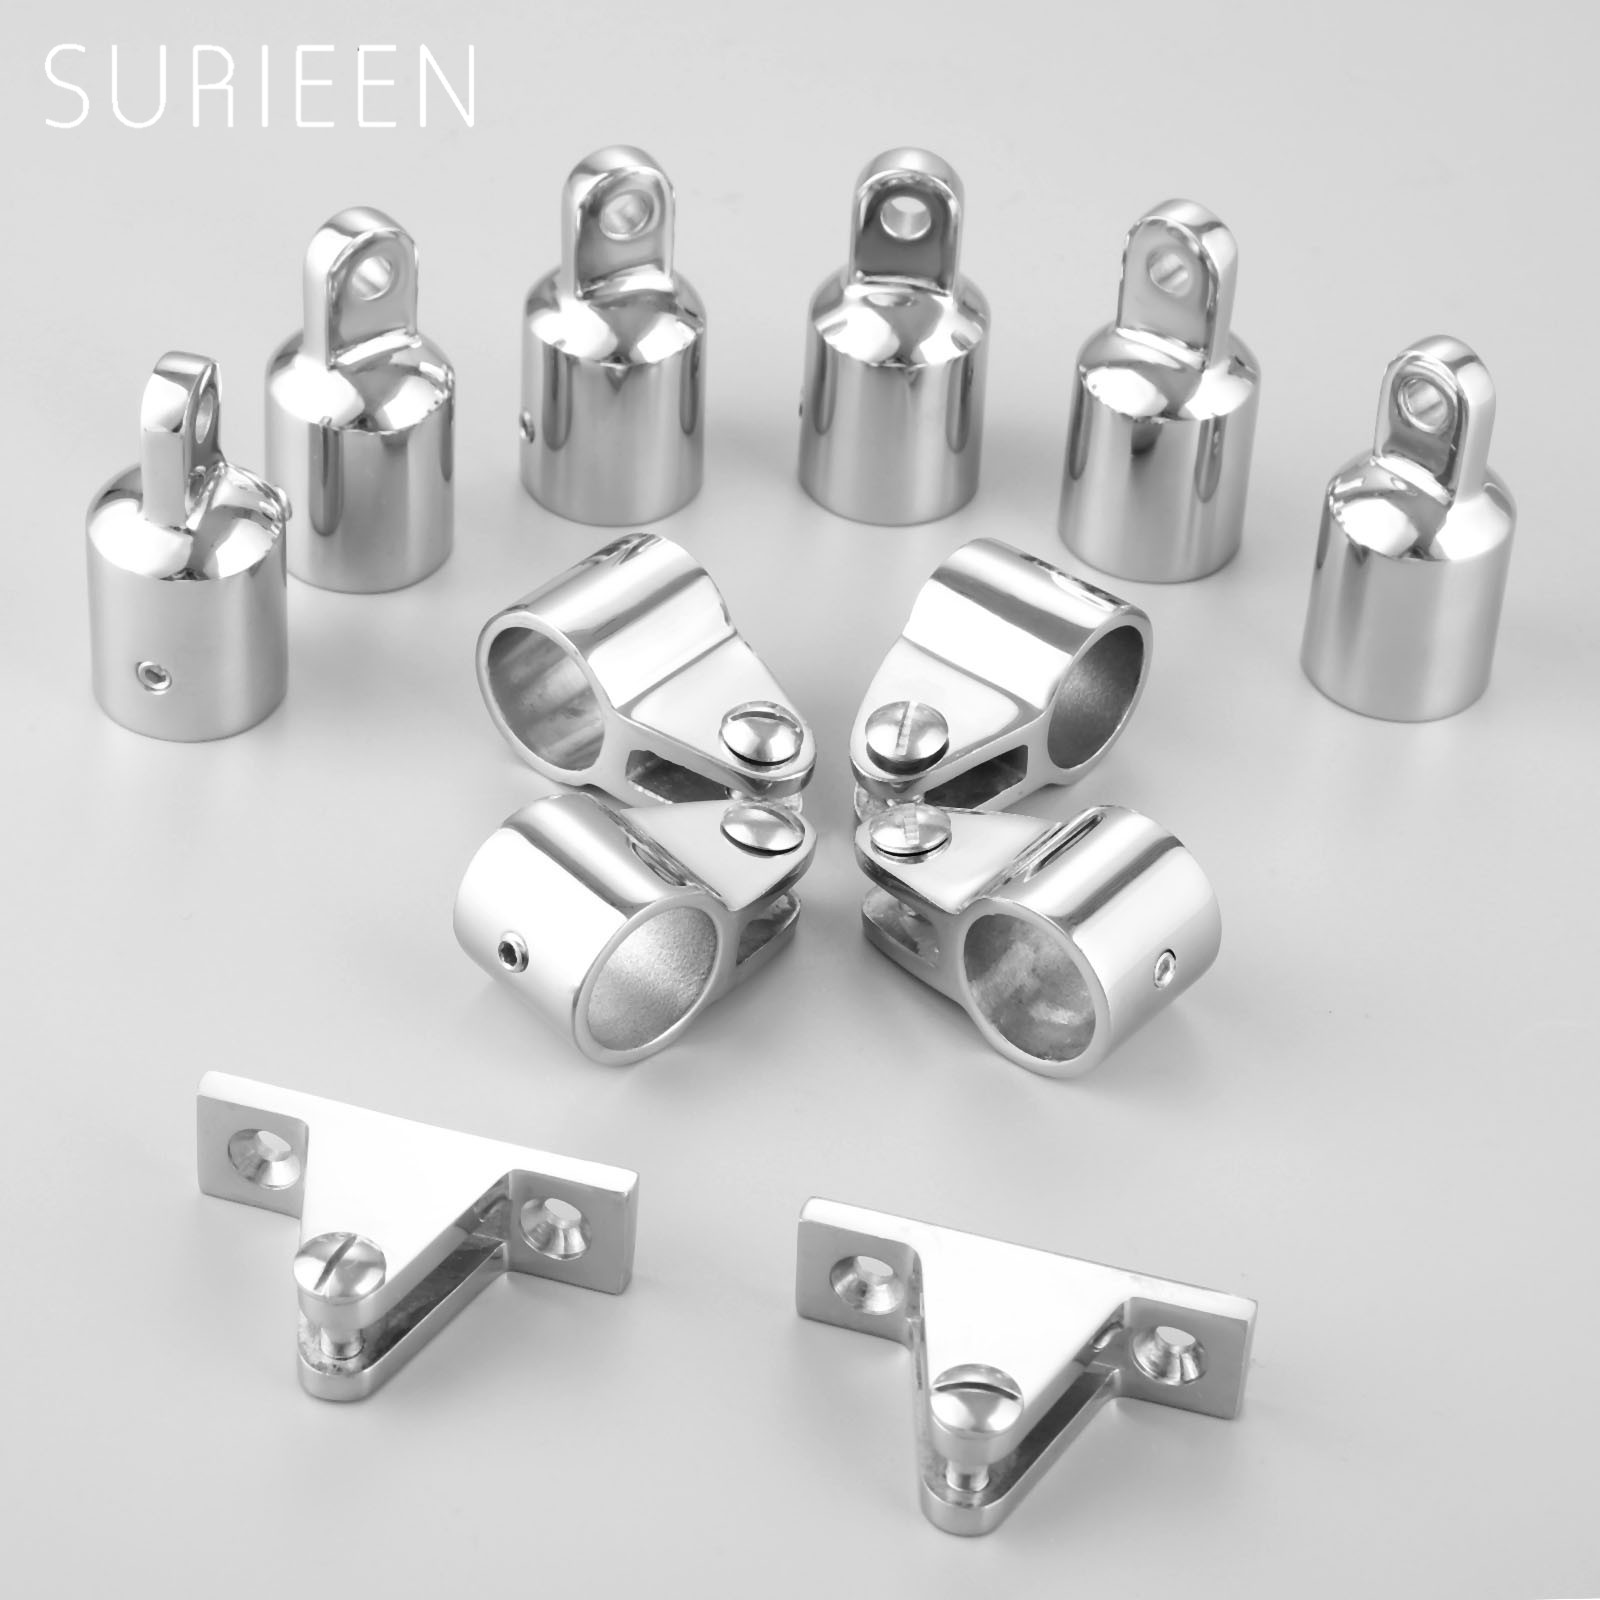 "Marine Boat Stainless Steel Bimini Top Hardware Fitting Set 3 Bow 3/4"" 20mm - 6 Eye End Fitting+4 Jaw Slide Fitting+2 Deck Hinge"